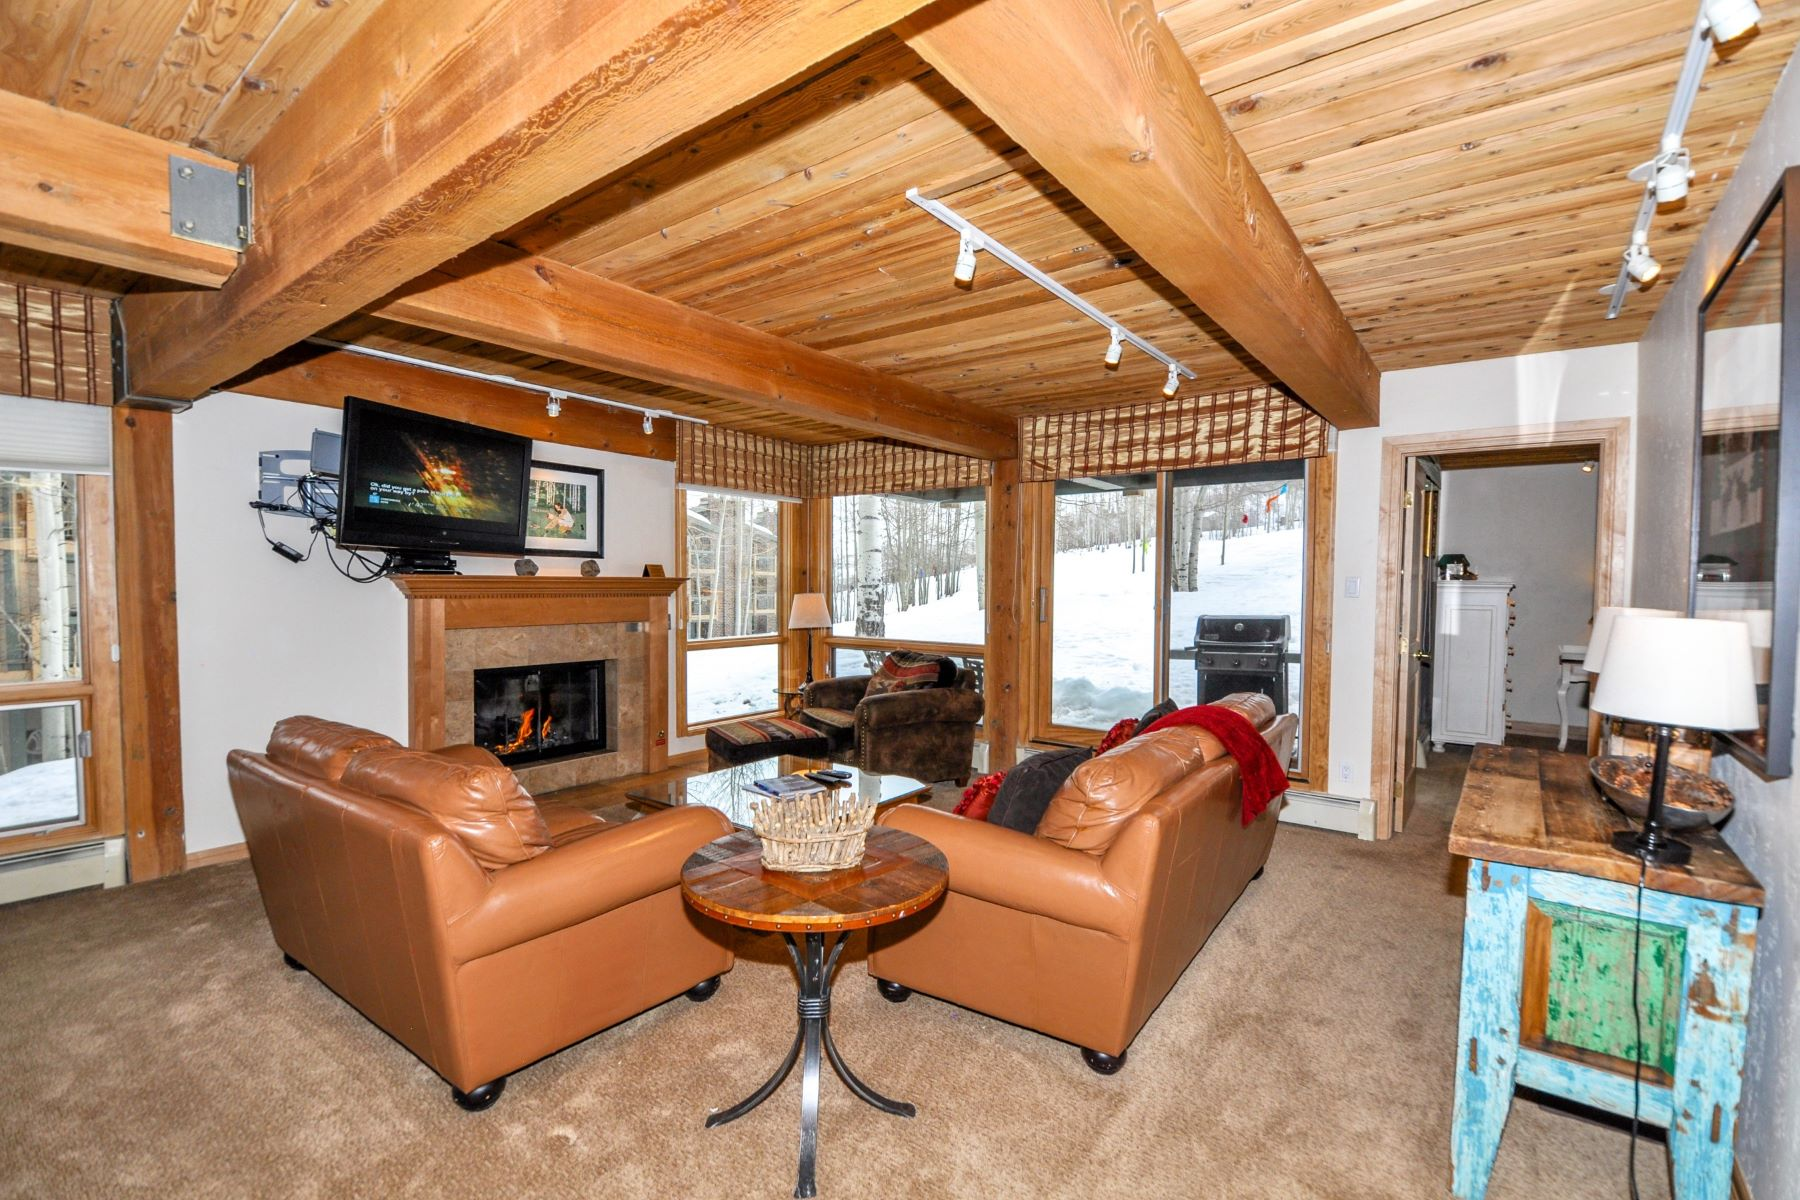 Nhà chung cư vì Bán tại Ski Access to the Door 855 Carriage Way, Trails Unit 103 Snowmass Village, Colorado, 81615 Hoa Kỳ